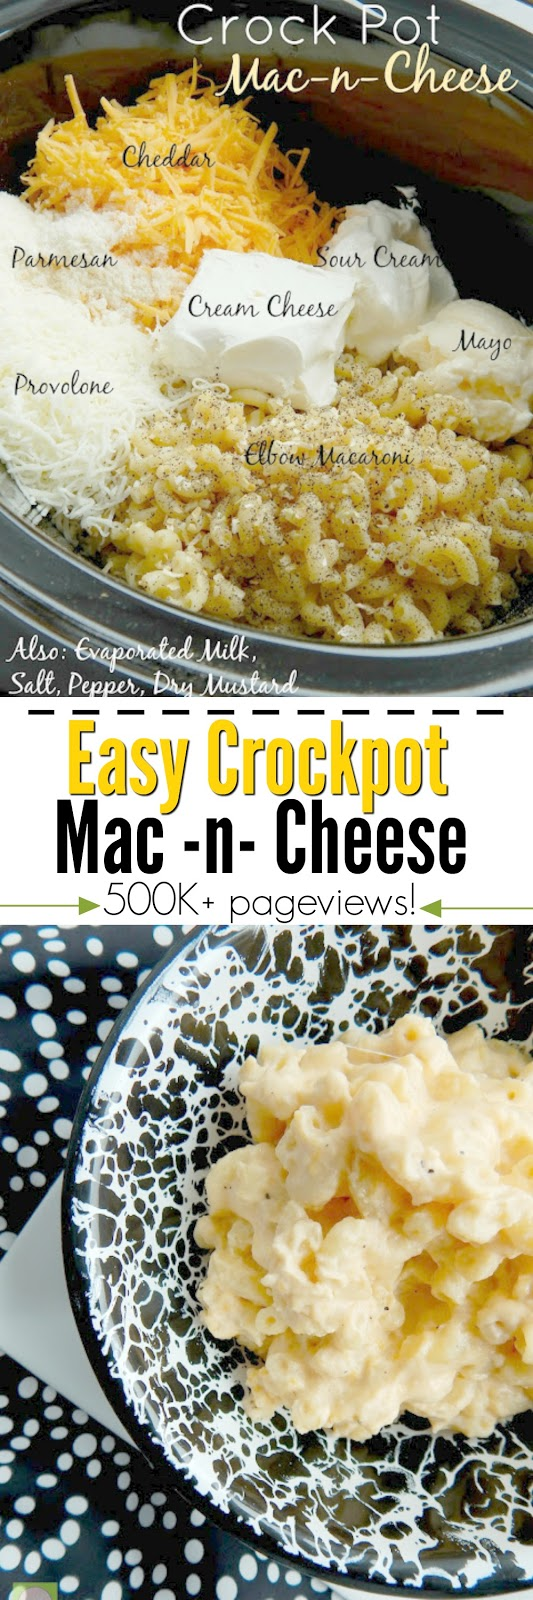 crockpot mac-n-cheese #sweetsavoryeats #macandcheese